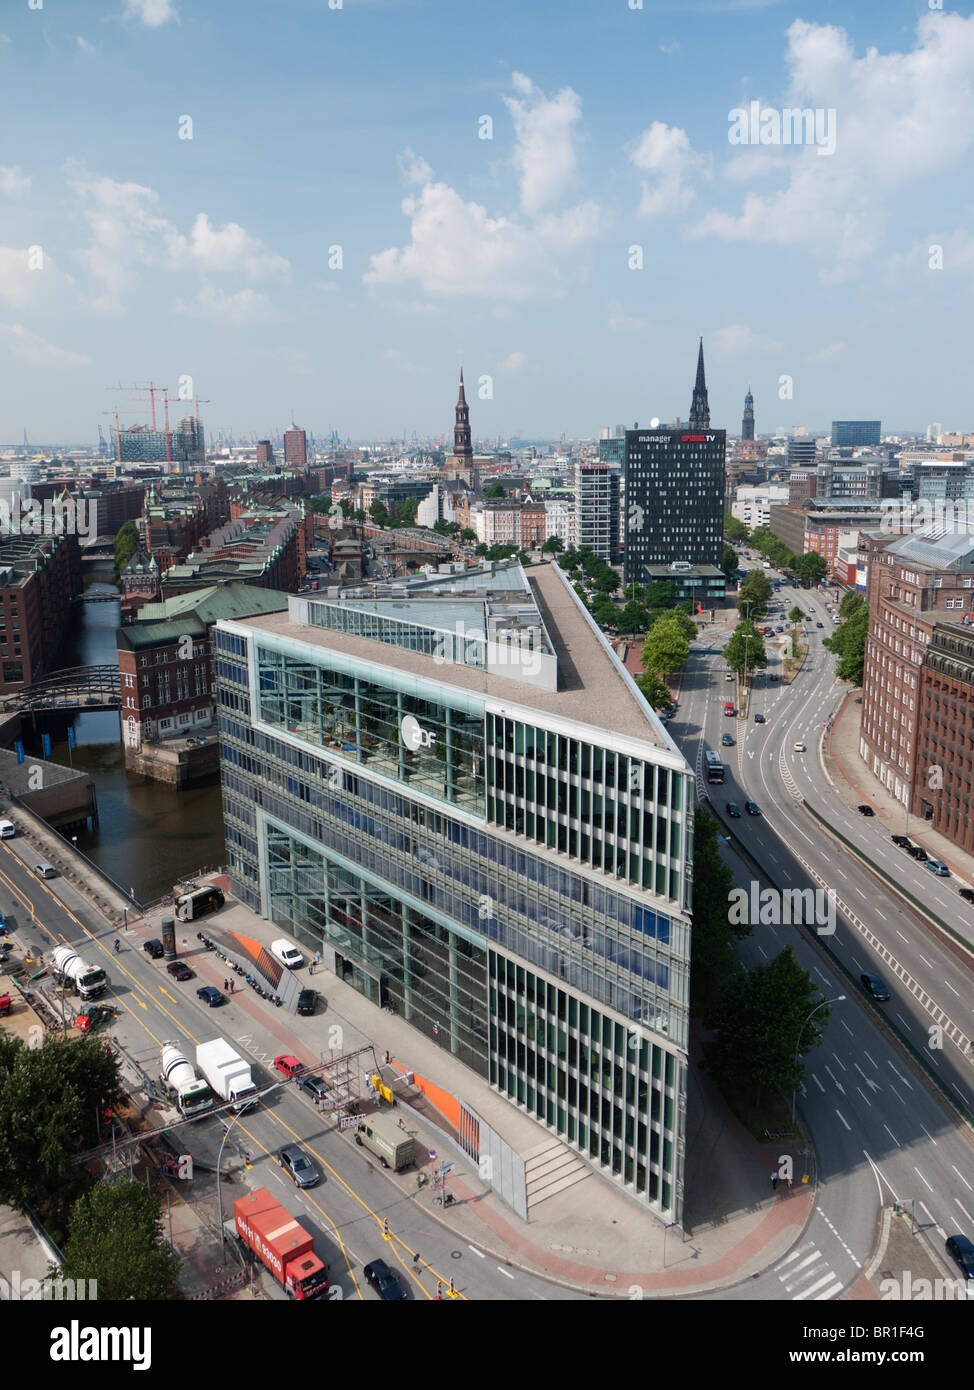 Aerial view of modern architecture of office building in Hafencity development in Hamburg Germany - Stock Image